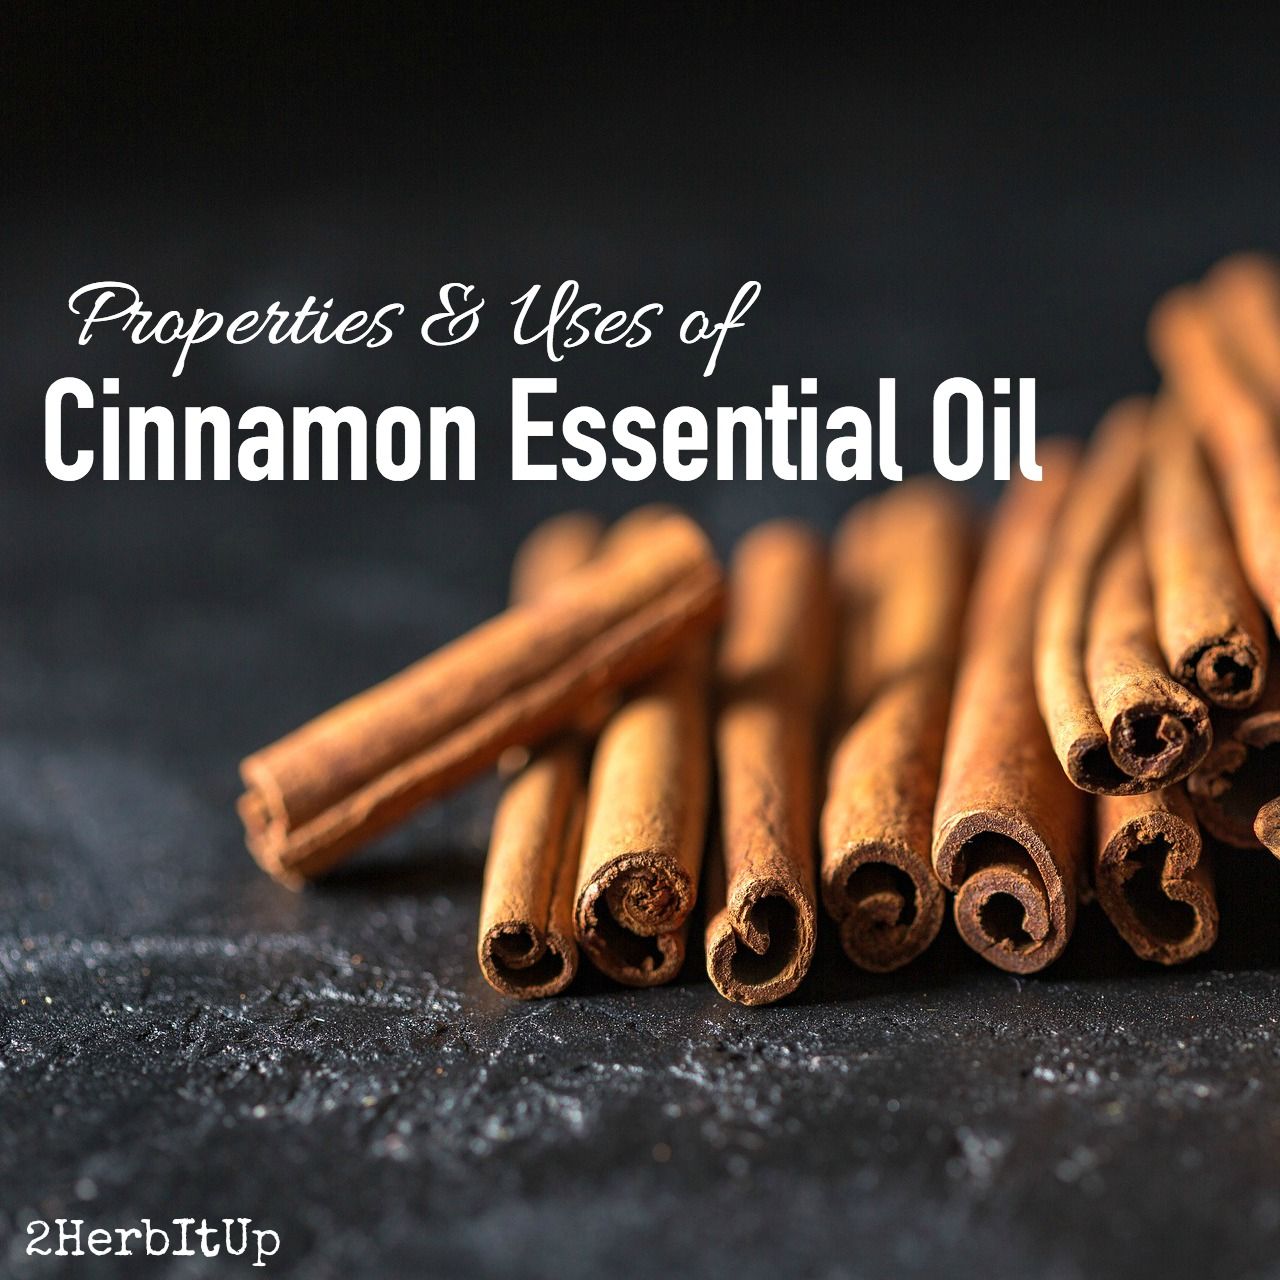 Learn how to use cinnamon essential oil with this short video.